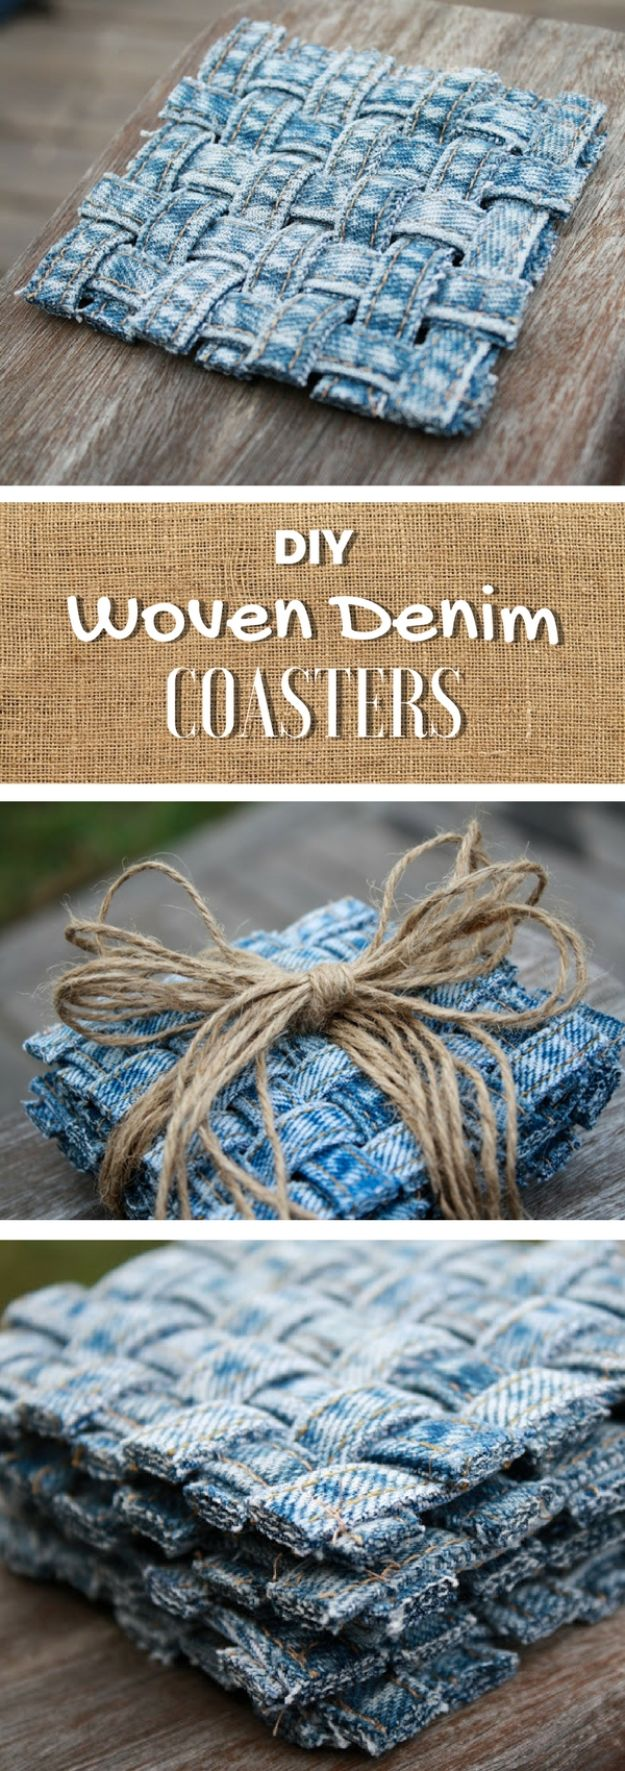 Blue Jean Upcycles - Woven Jean Seam Coasters - Ways to Make Old Denim Jeans Into DIY Home Decor, Handmade Gifts and Creative Fashion - Transform Old Blue Jeans into Pillows, Rugs, Kitchen and Living Room Decor, Easy Sewing Projects for Beginners #sewing #diy #crafts #upcycle